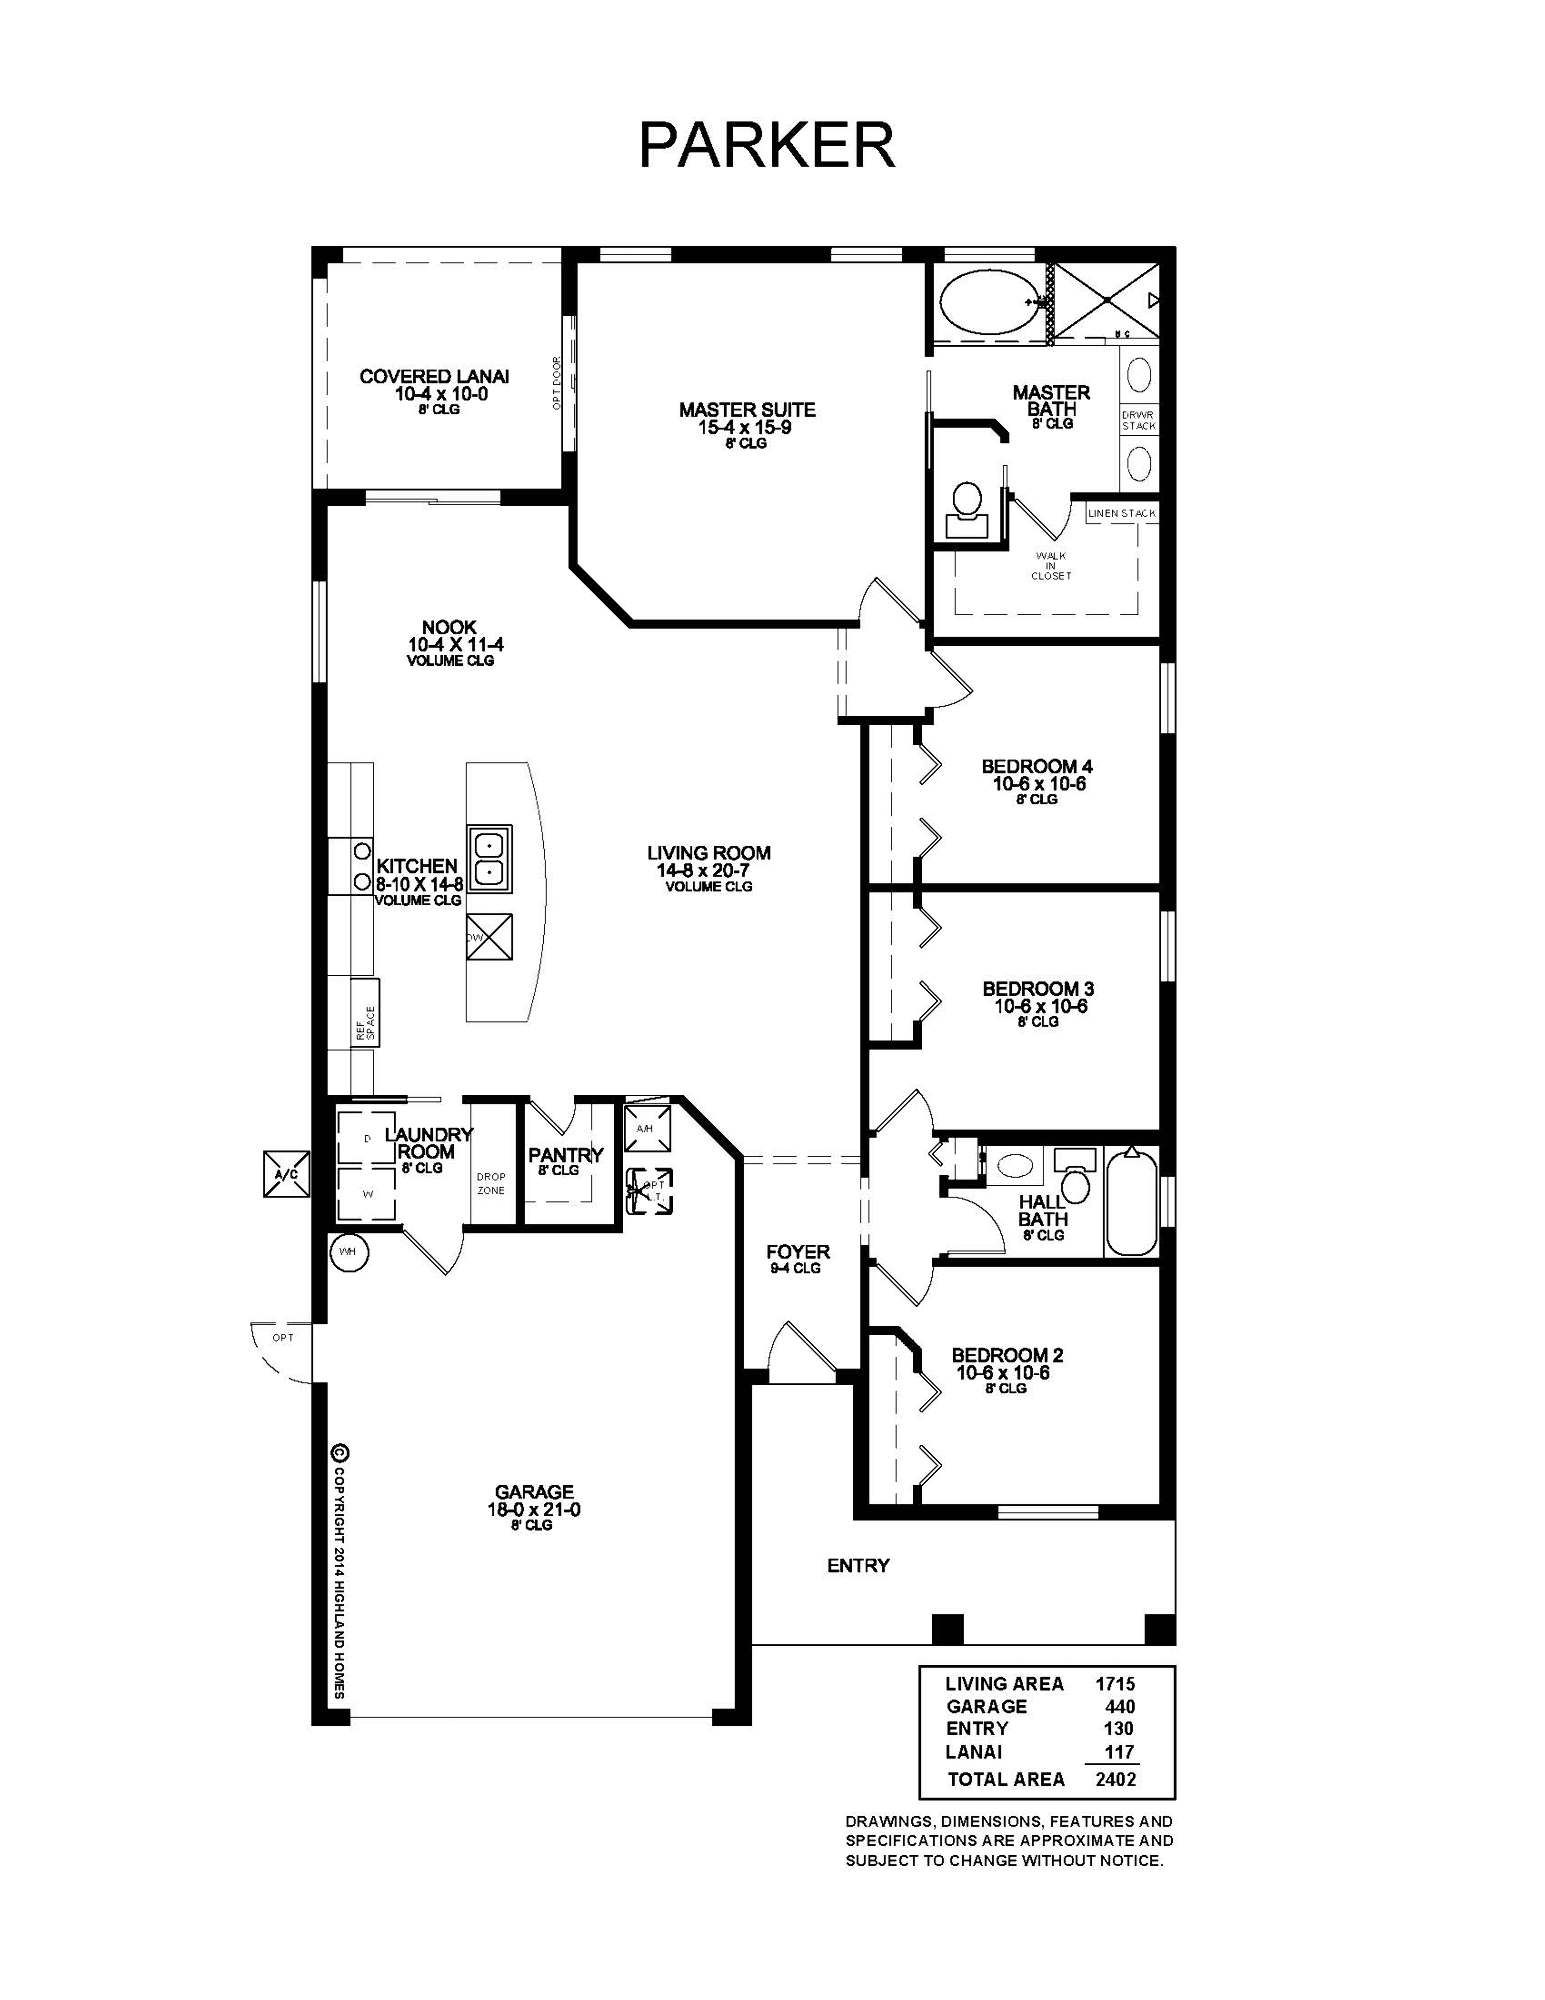 Parker Home Floor Plan at Highland Meadows in Davenport FL